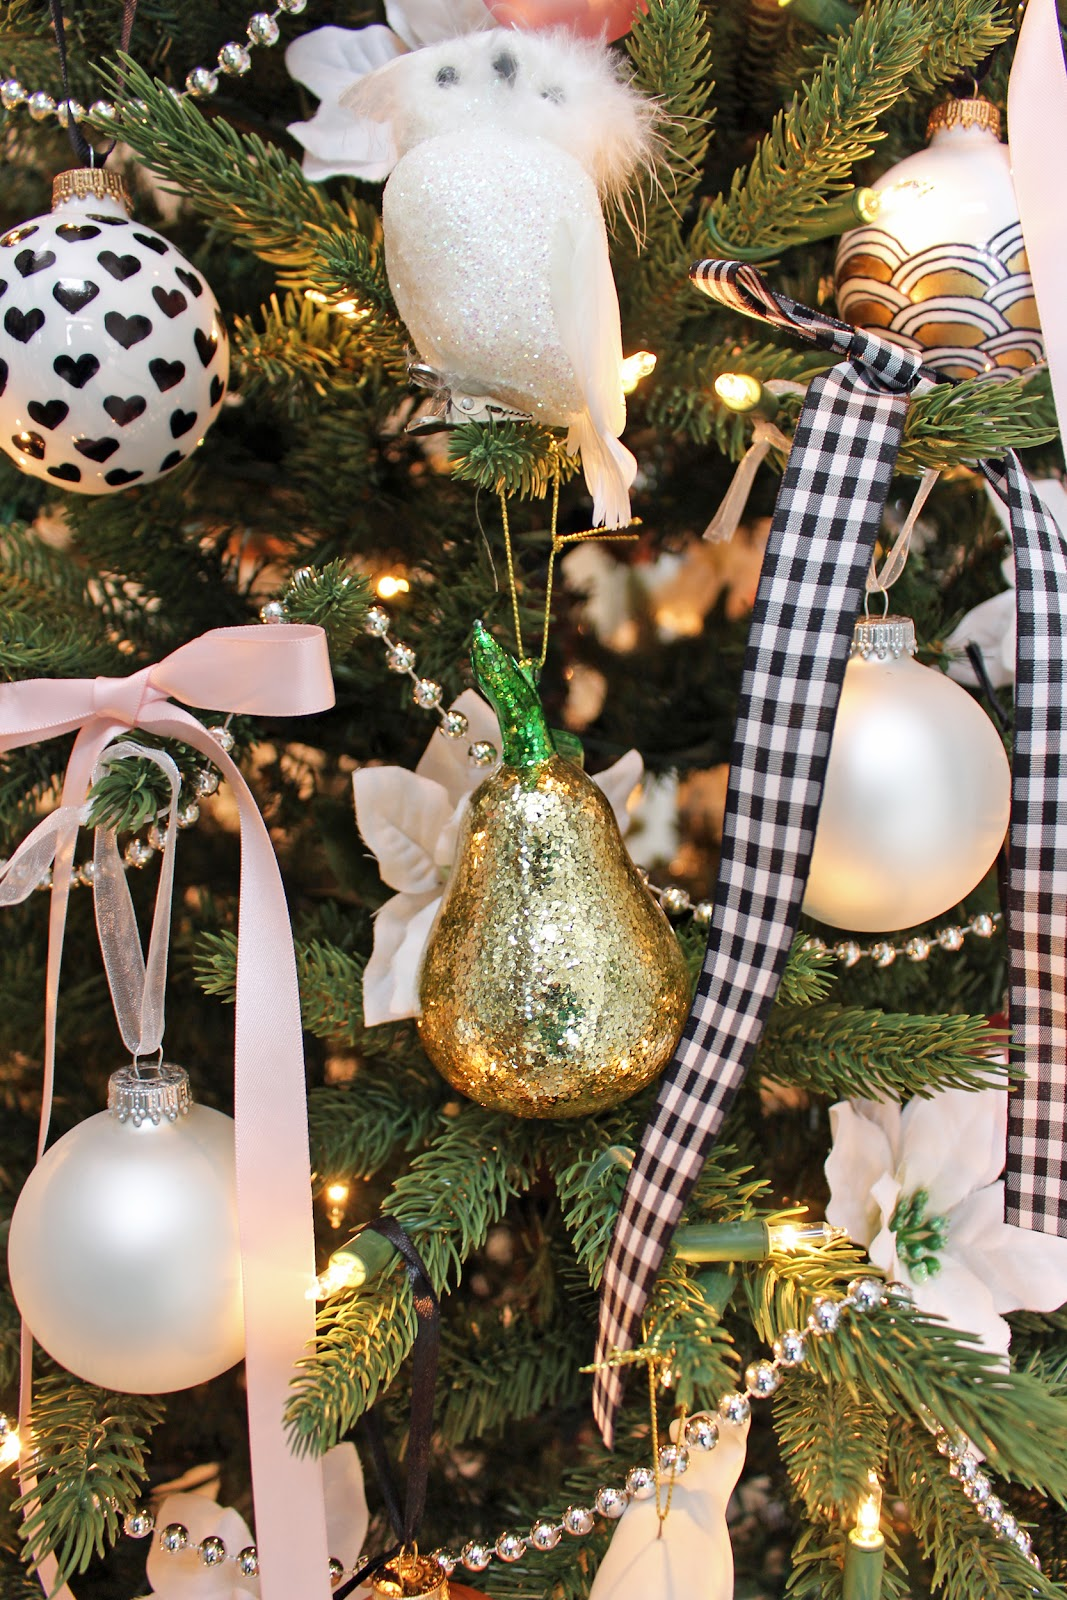 Am dolce vita december 2016 picture below gold pineapple ornament from glitterville solutioingenieria Choice Image